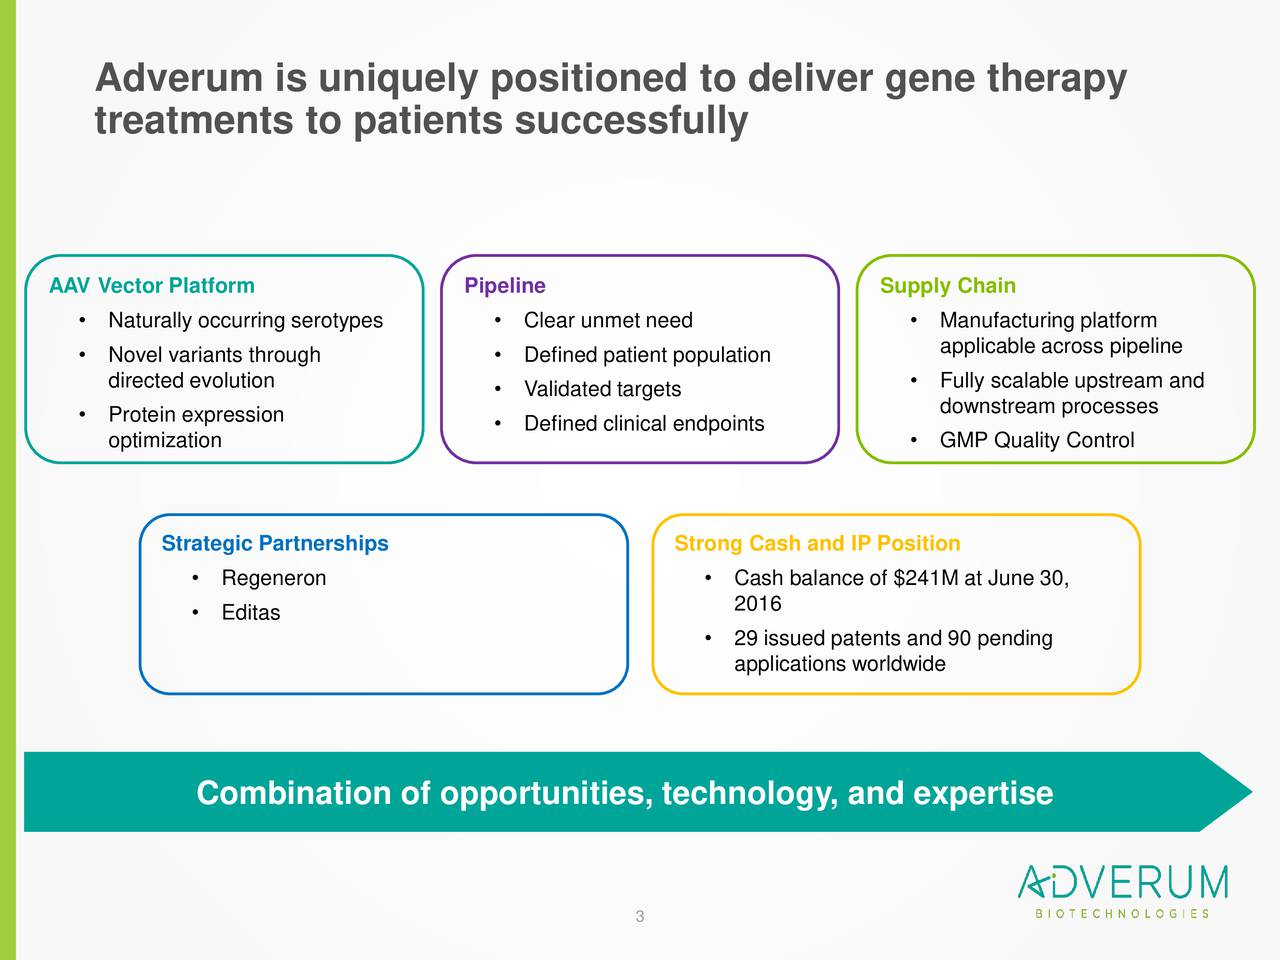 treatments to patients successfully AAV Vector Platform Pipeline Supply Chain Naturally occurring serotypes  Clear unmet need  Manufacturing platform Novel variants through  Defined patient population applicable across pipeline directed evolution  Fully scalable upstream and Validated targets downstream processes Protein expression  Defined clinical endpoints optimization  GMP Quality Control Strategic Partnerships Strong Cash and IP Position Regeneron  Cash balance of $241M at June 30, 2016 Editas 29 issued patents and 90 pending applications worldwide Combination of opportunities, technology, and expertise 3